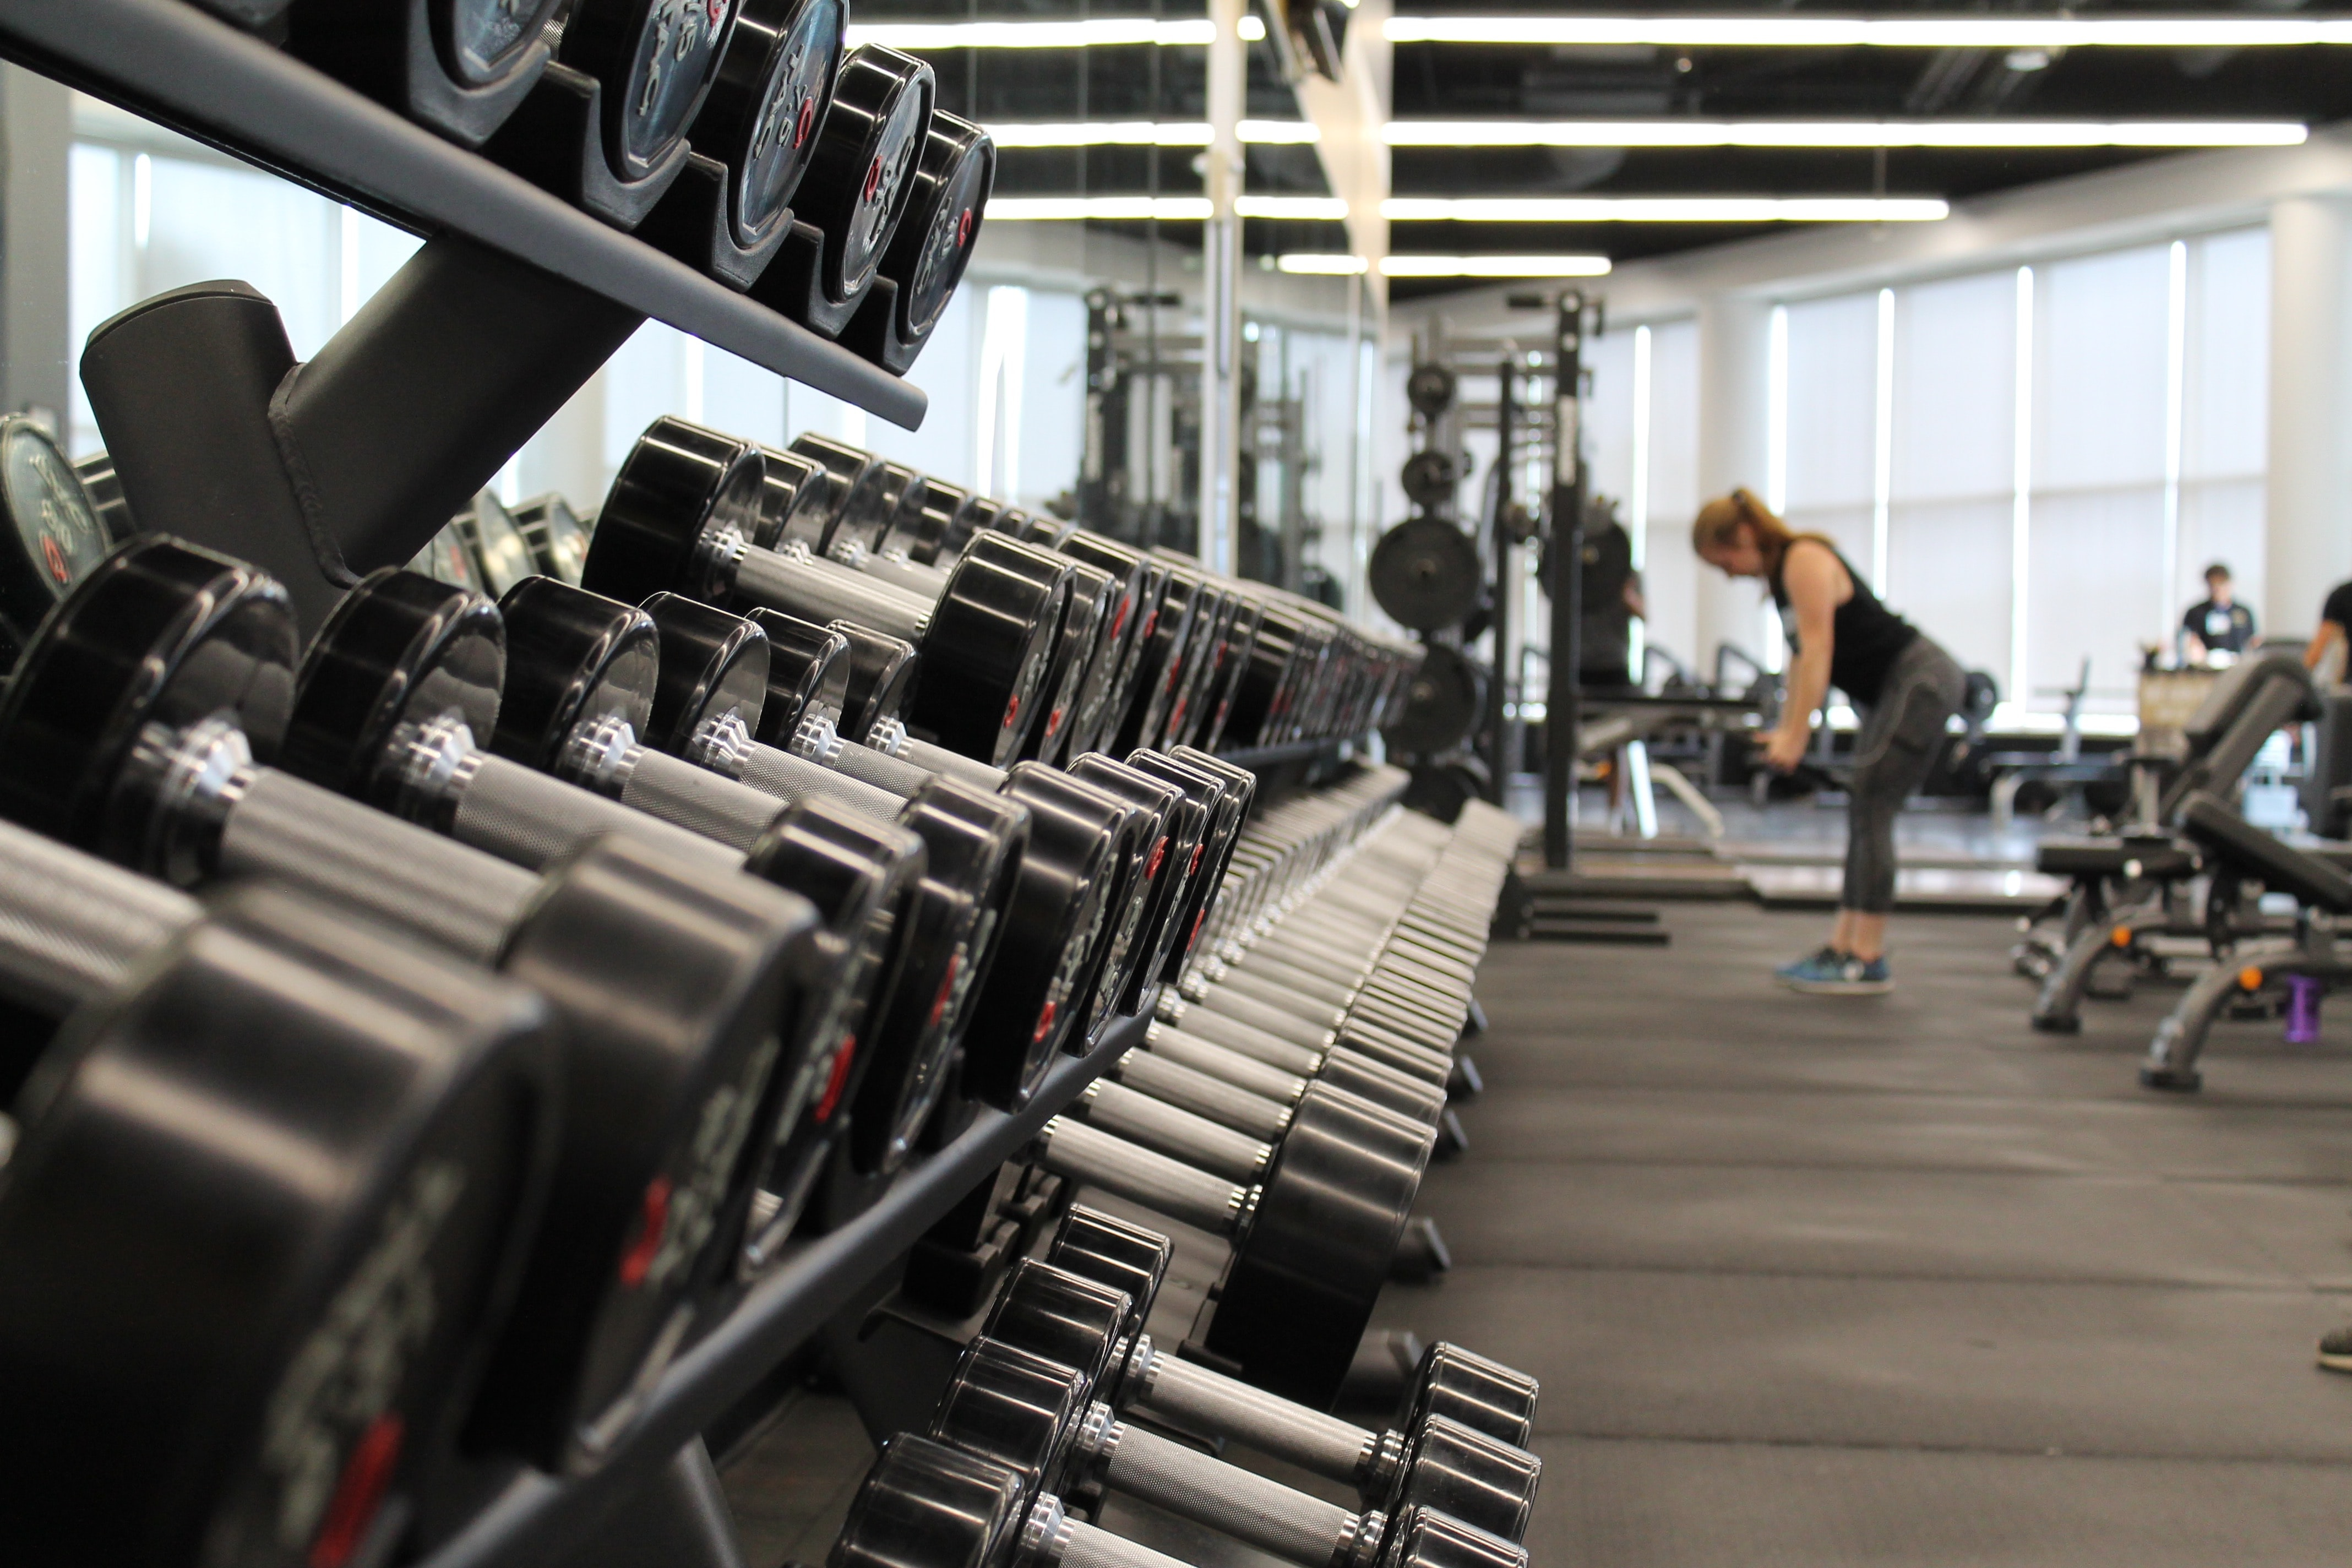 Life after lockdown: What you should know before re-opening your Personal Training Business post-Covid-19